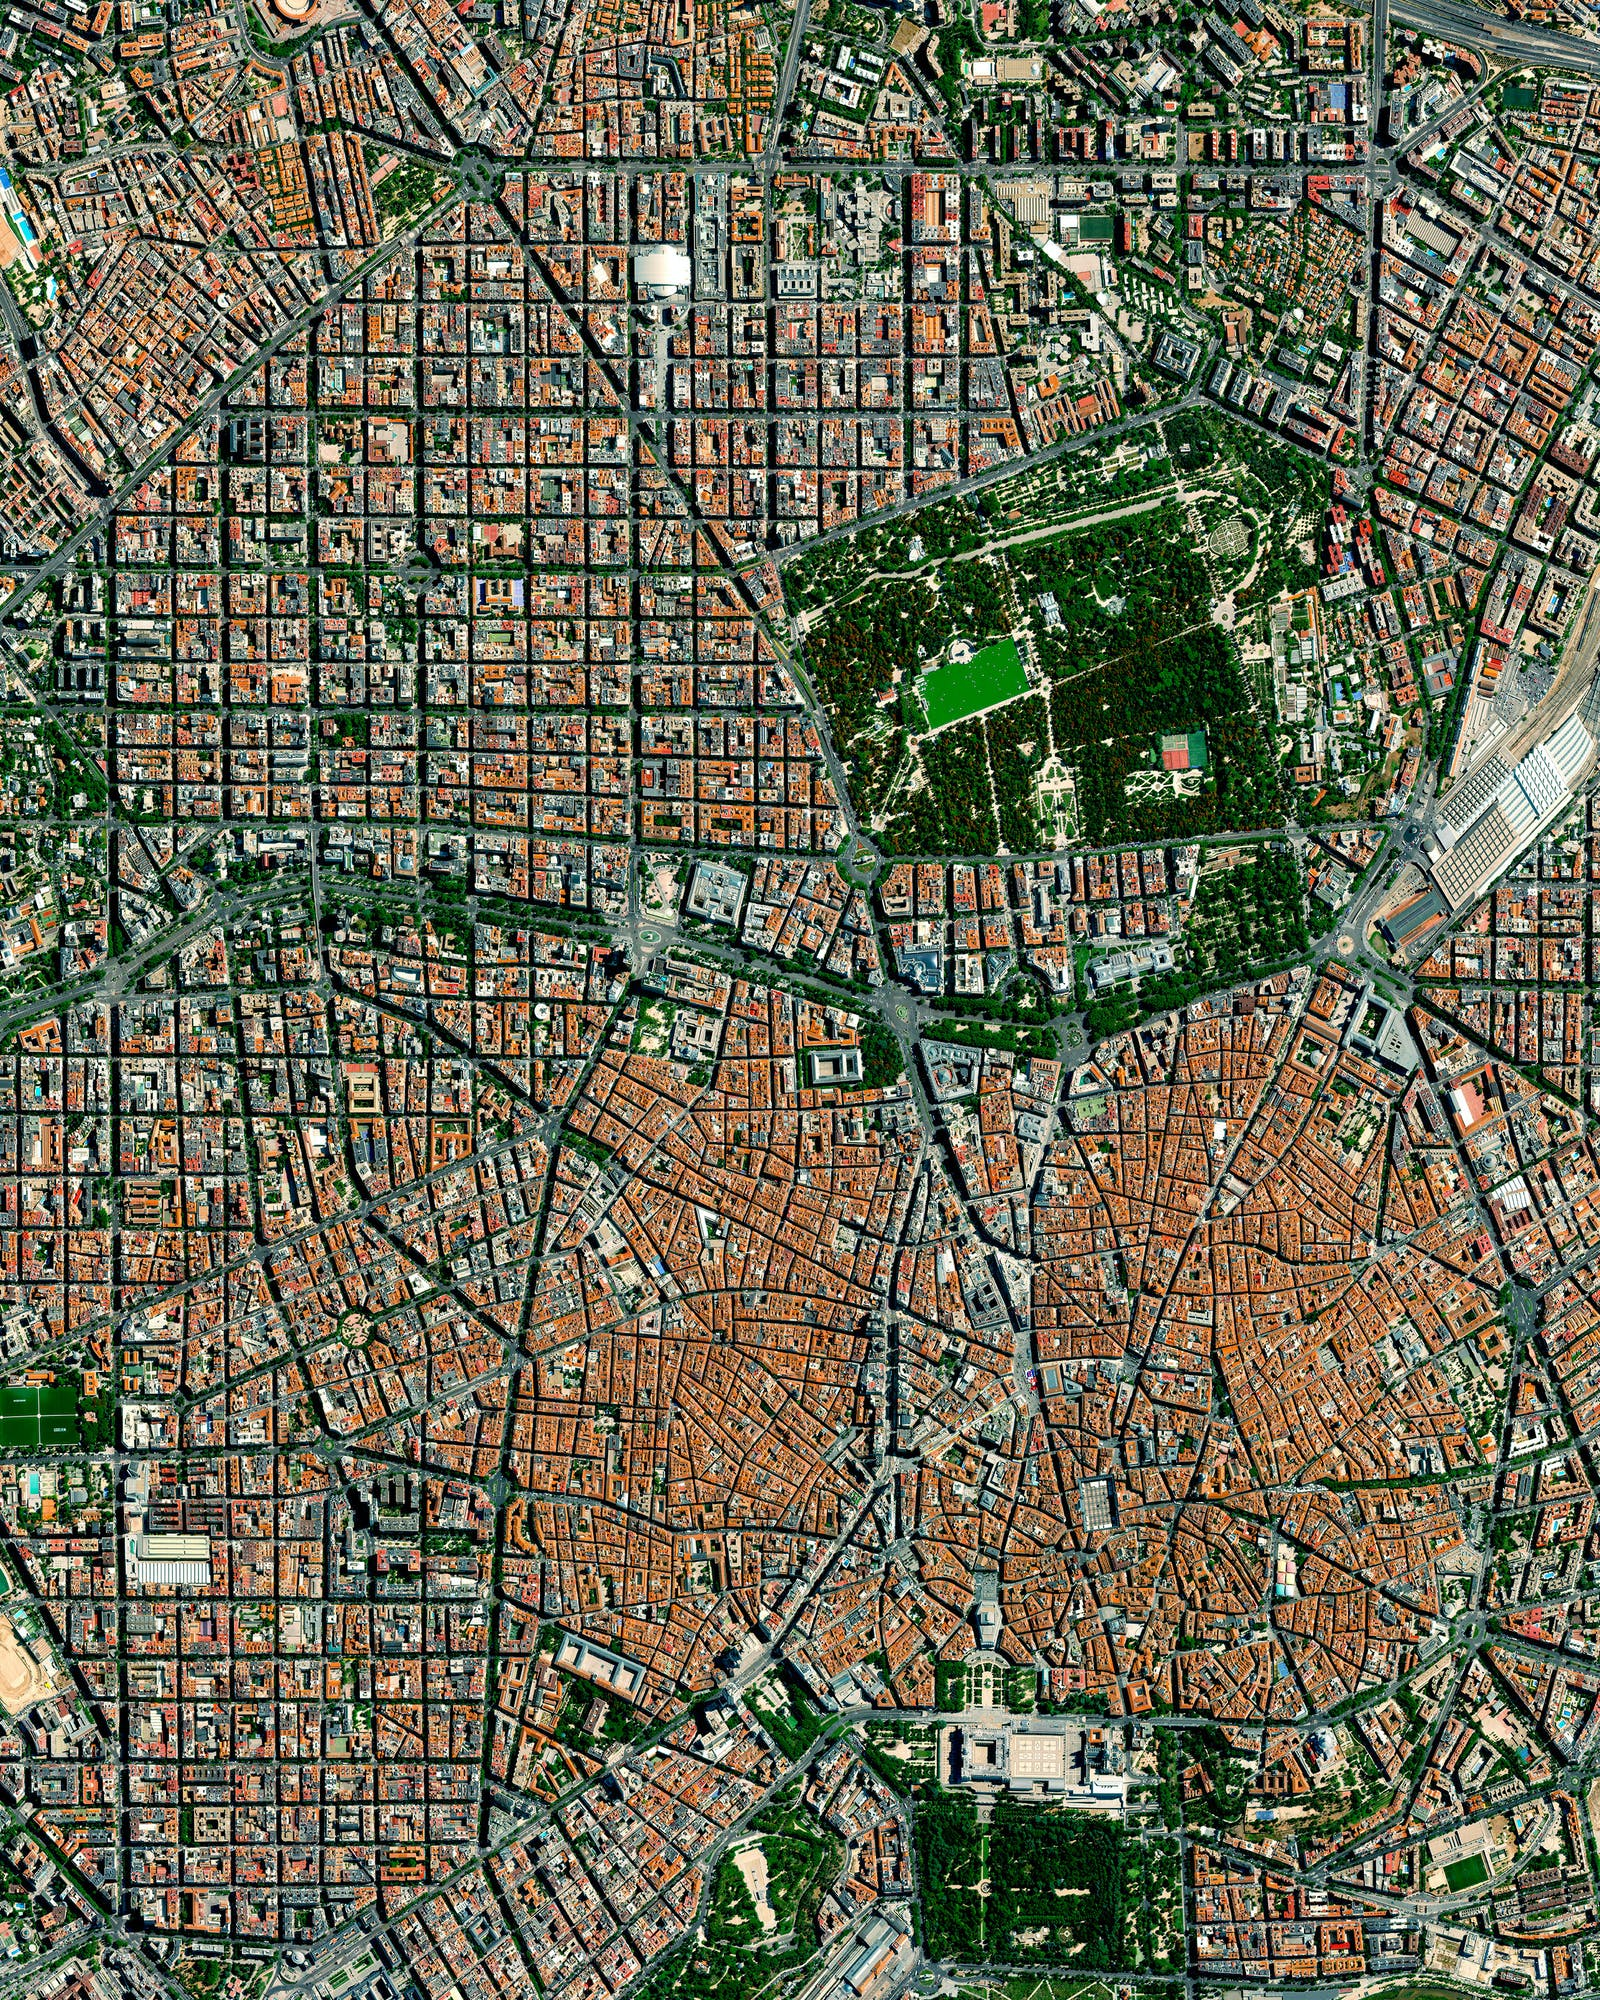 Mapping Green Spaces